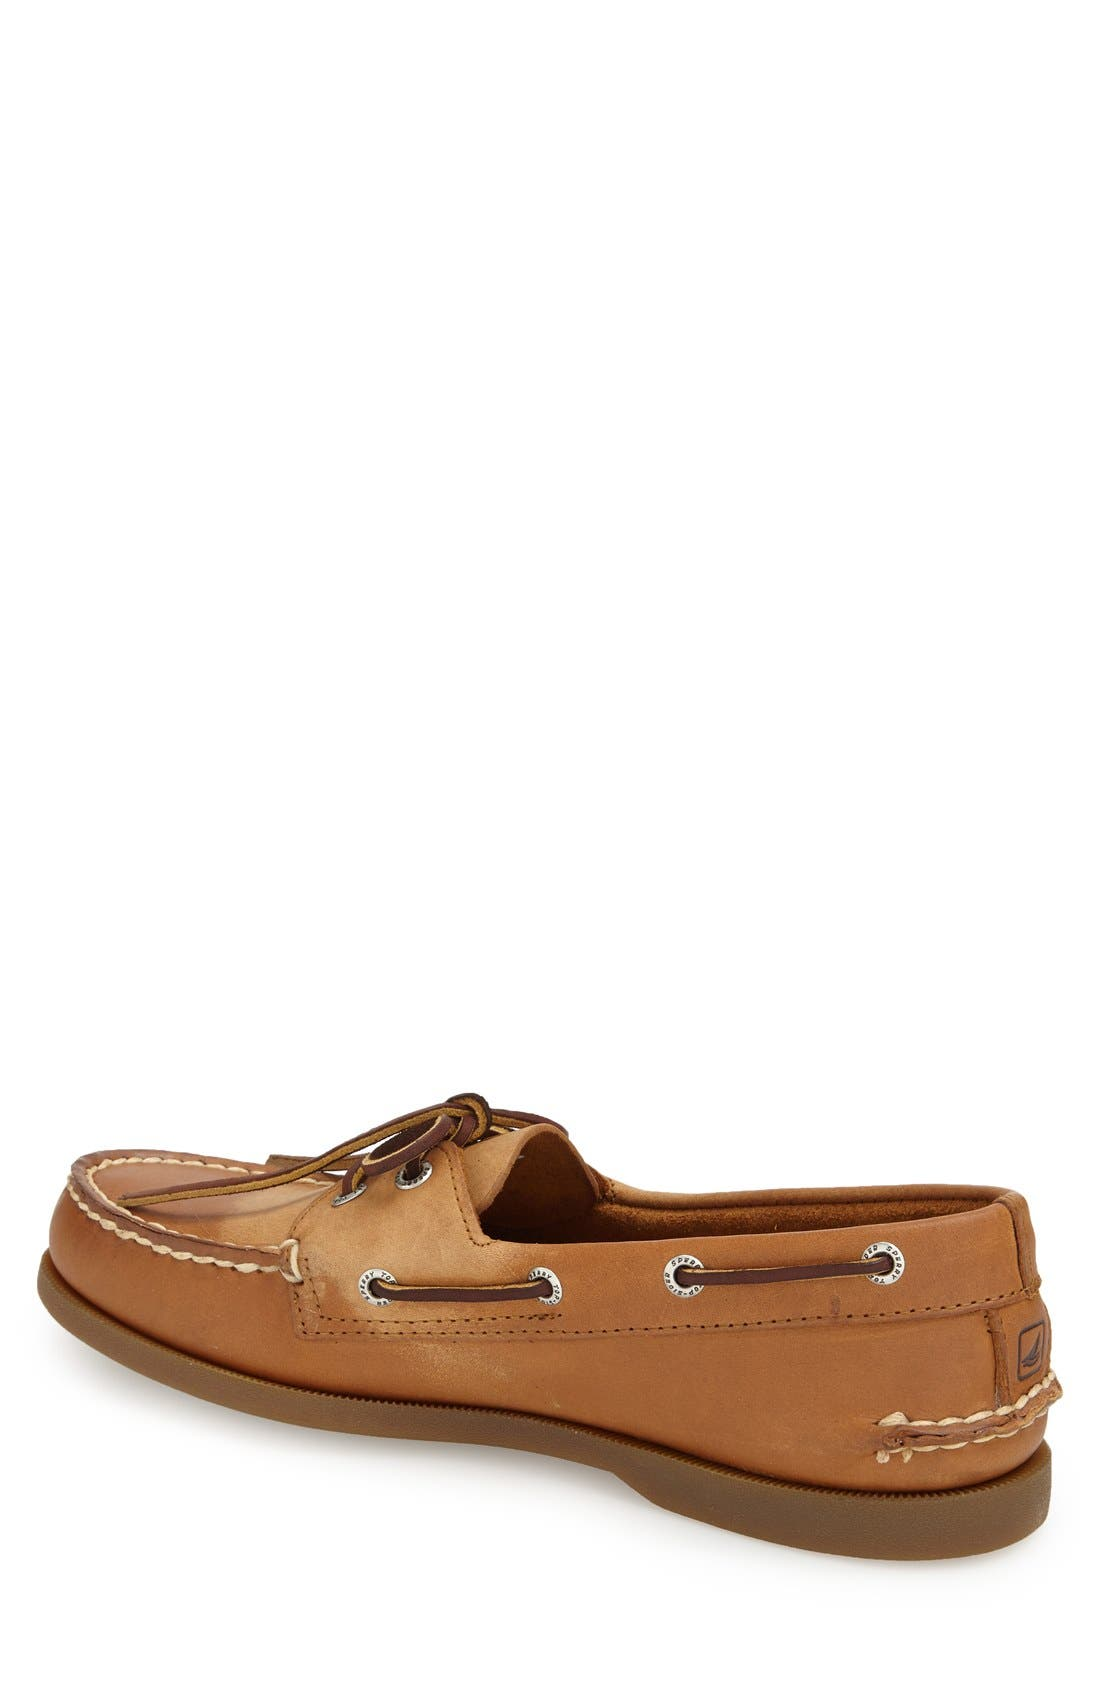 Alternate Image 2  - Sperry 'Authentic Original' Boat Shoe (Men)